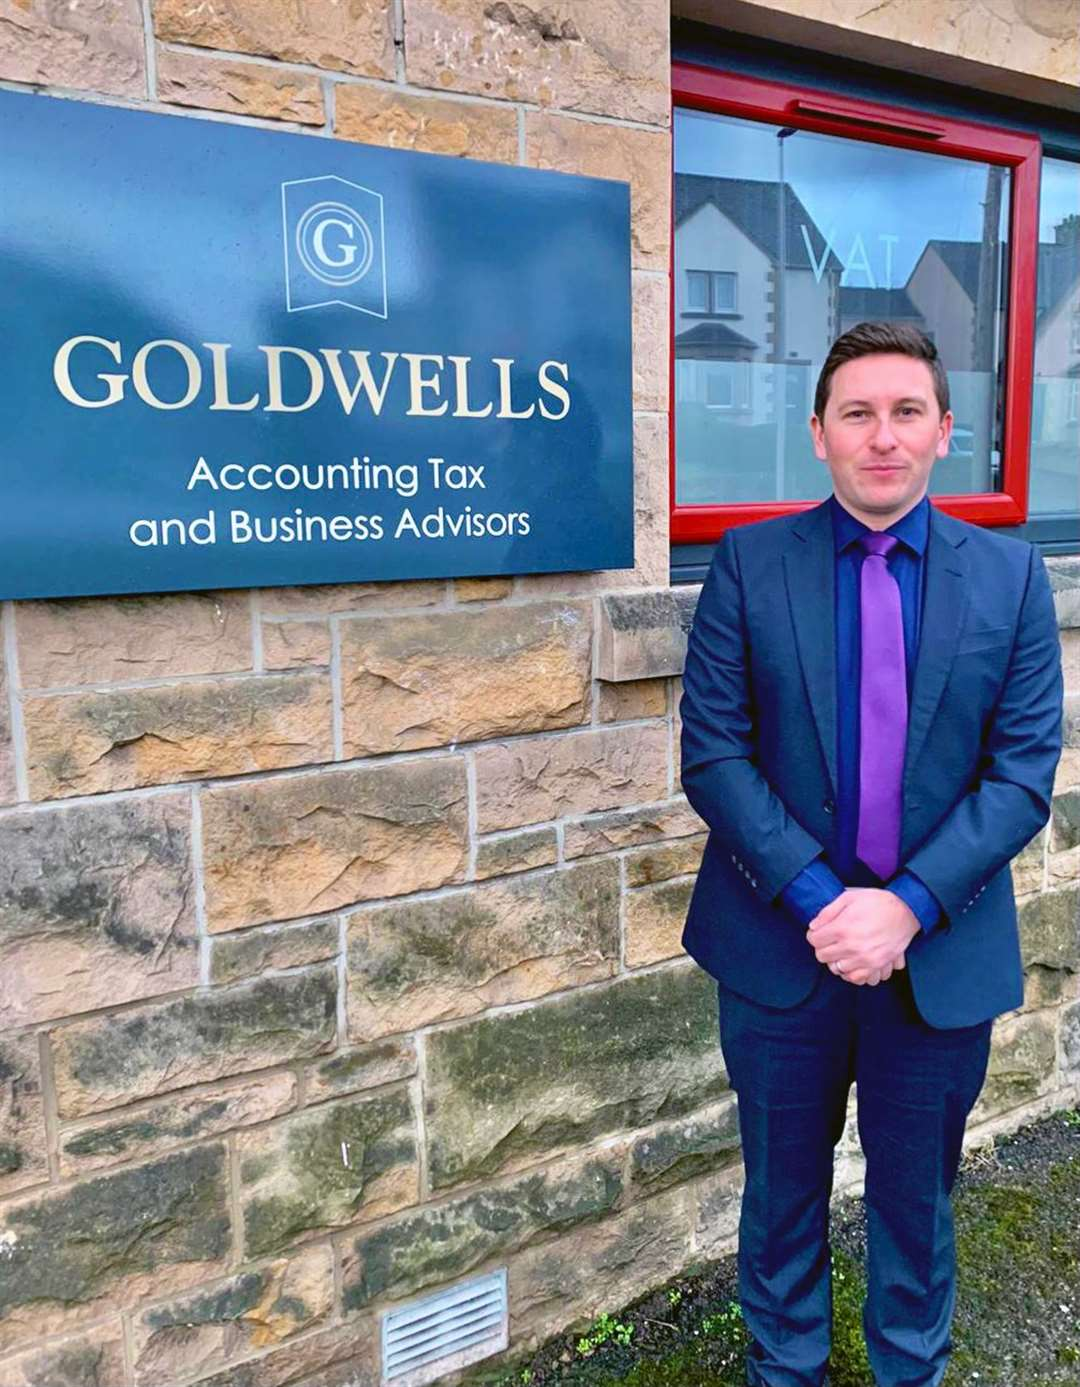 Accountant Ranald McDonald, from Goldwells' Elgin and Buckie offices.